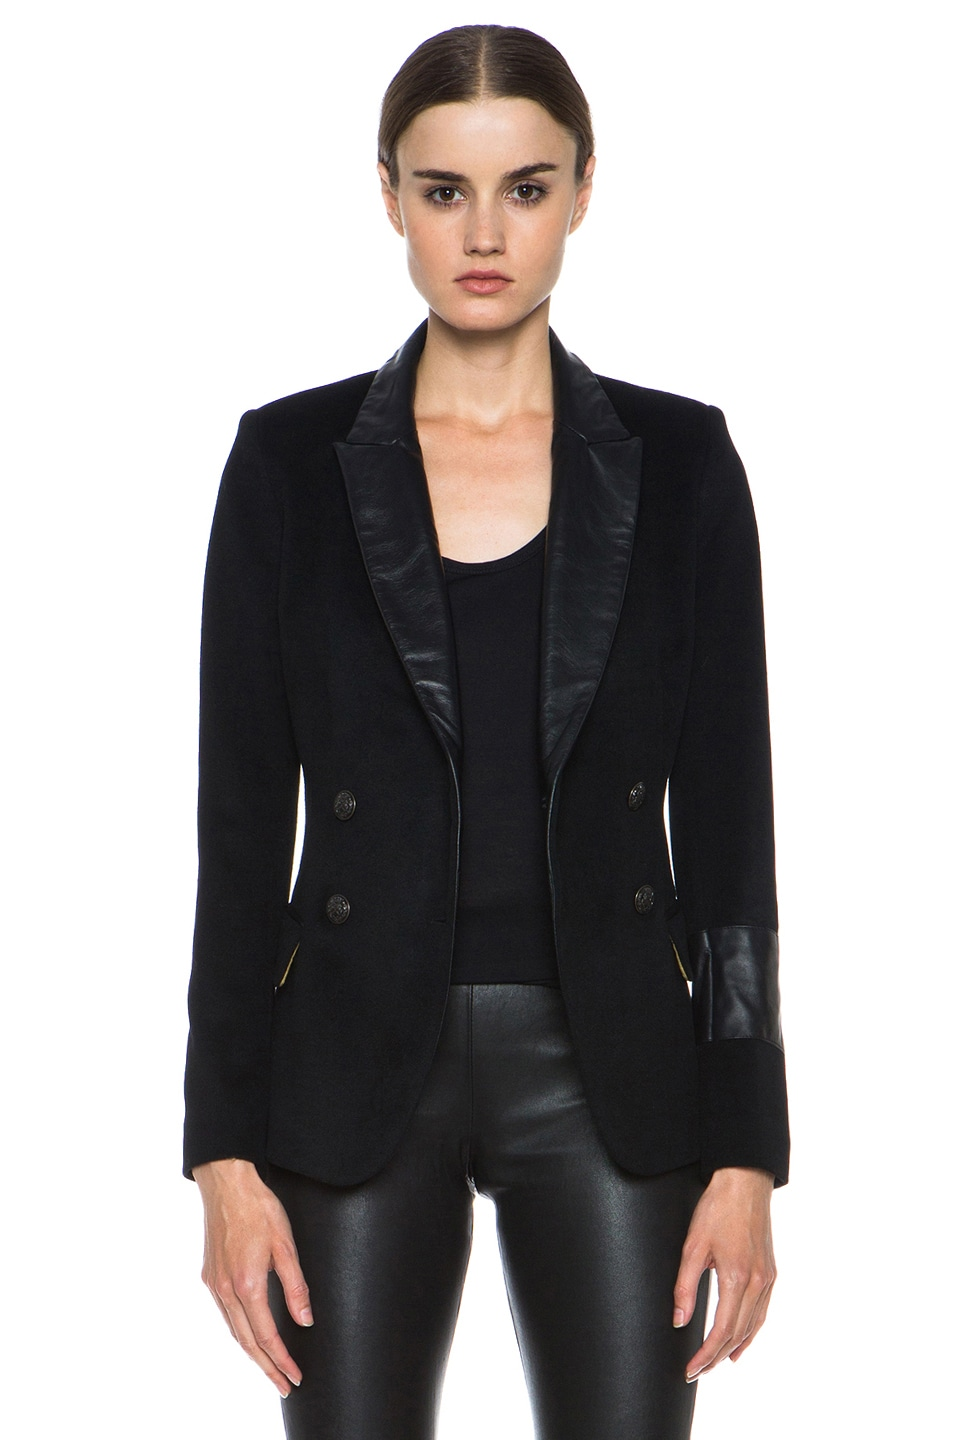 Image 1 of Laveer Kadette Wool Blazer with Leather Collar in Black